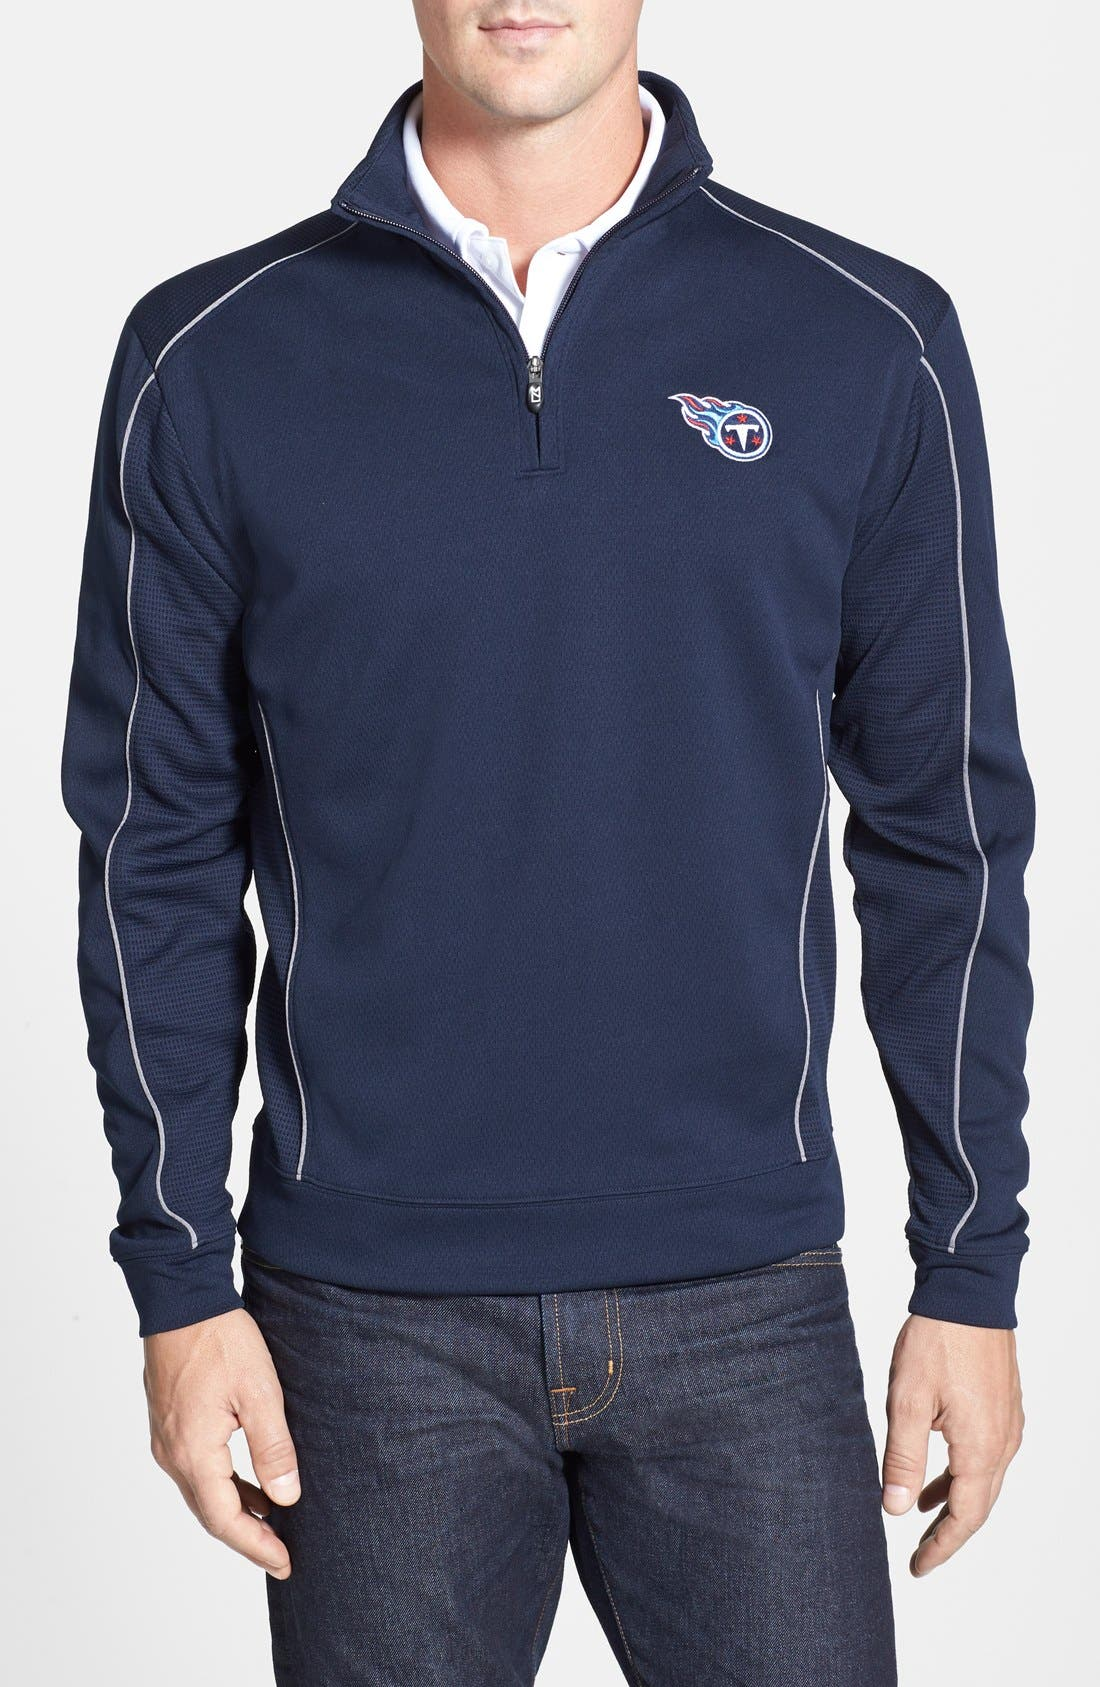 Tennessee Titans - Edge DryTec Moisture Wicking Half Zip Pullover,                             Main thumbnail 1, color,                             420